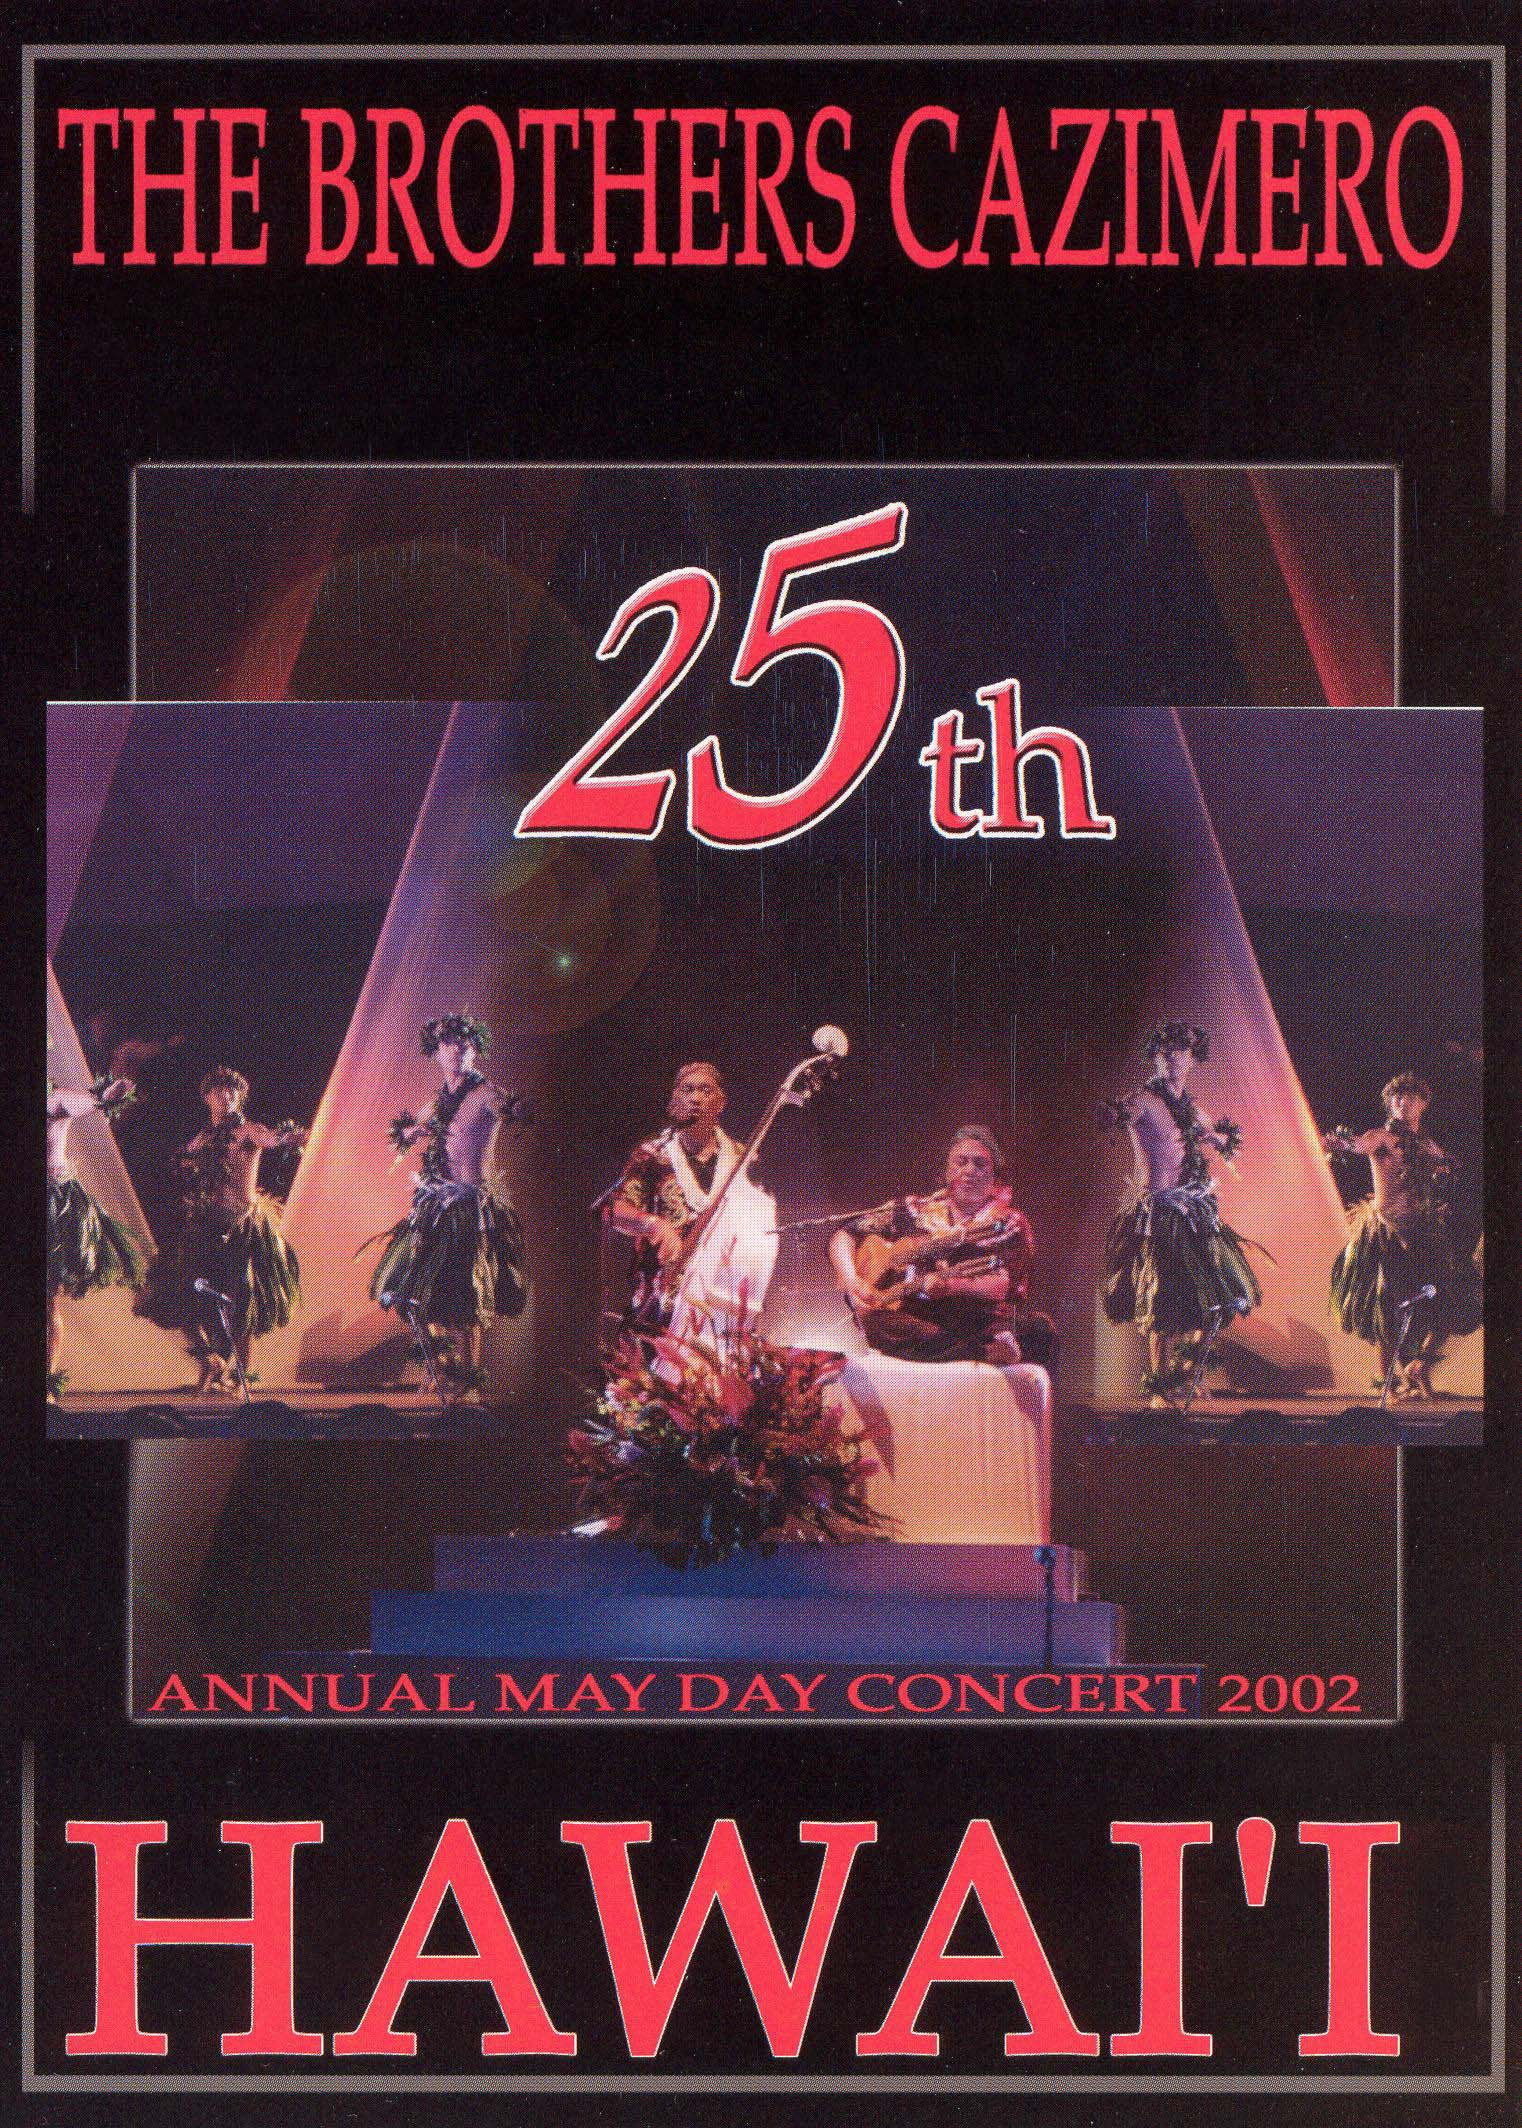 The Brothers Cazimero: 25th Annual May Day Concert 2002 - Hawai'i